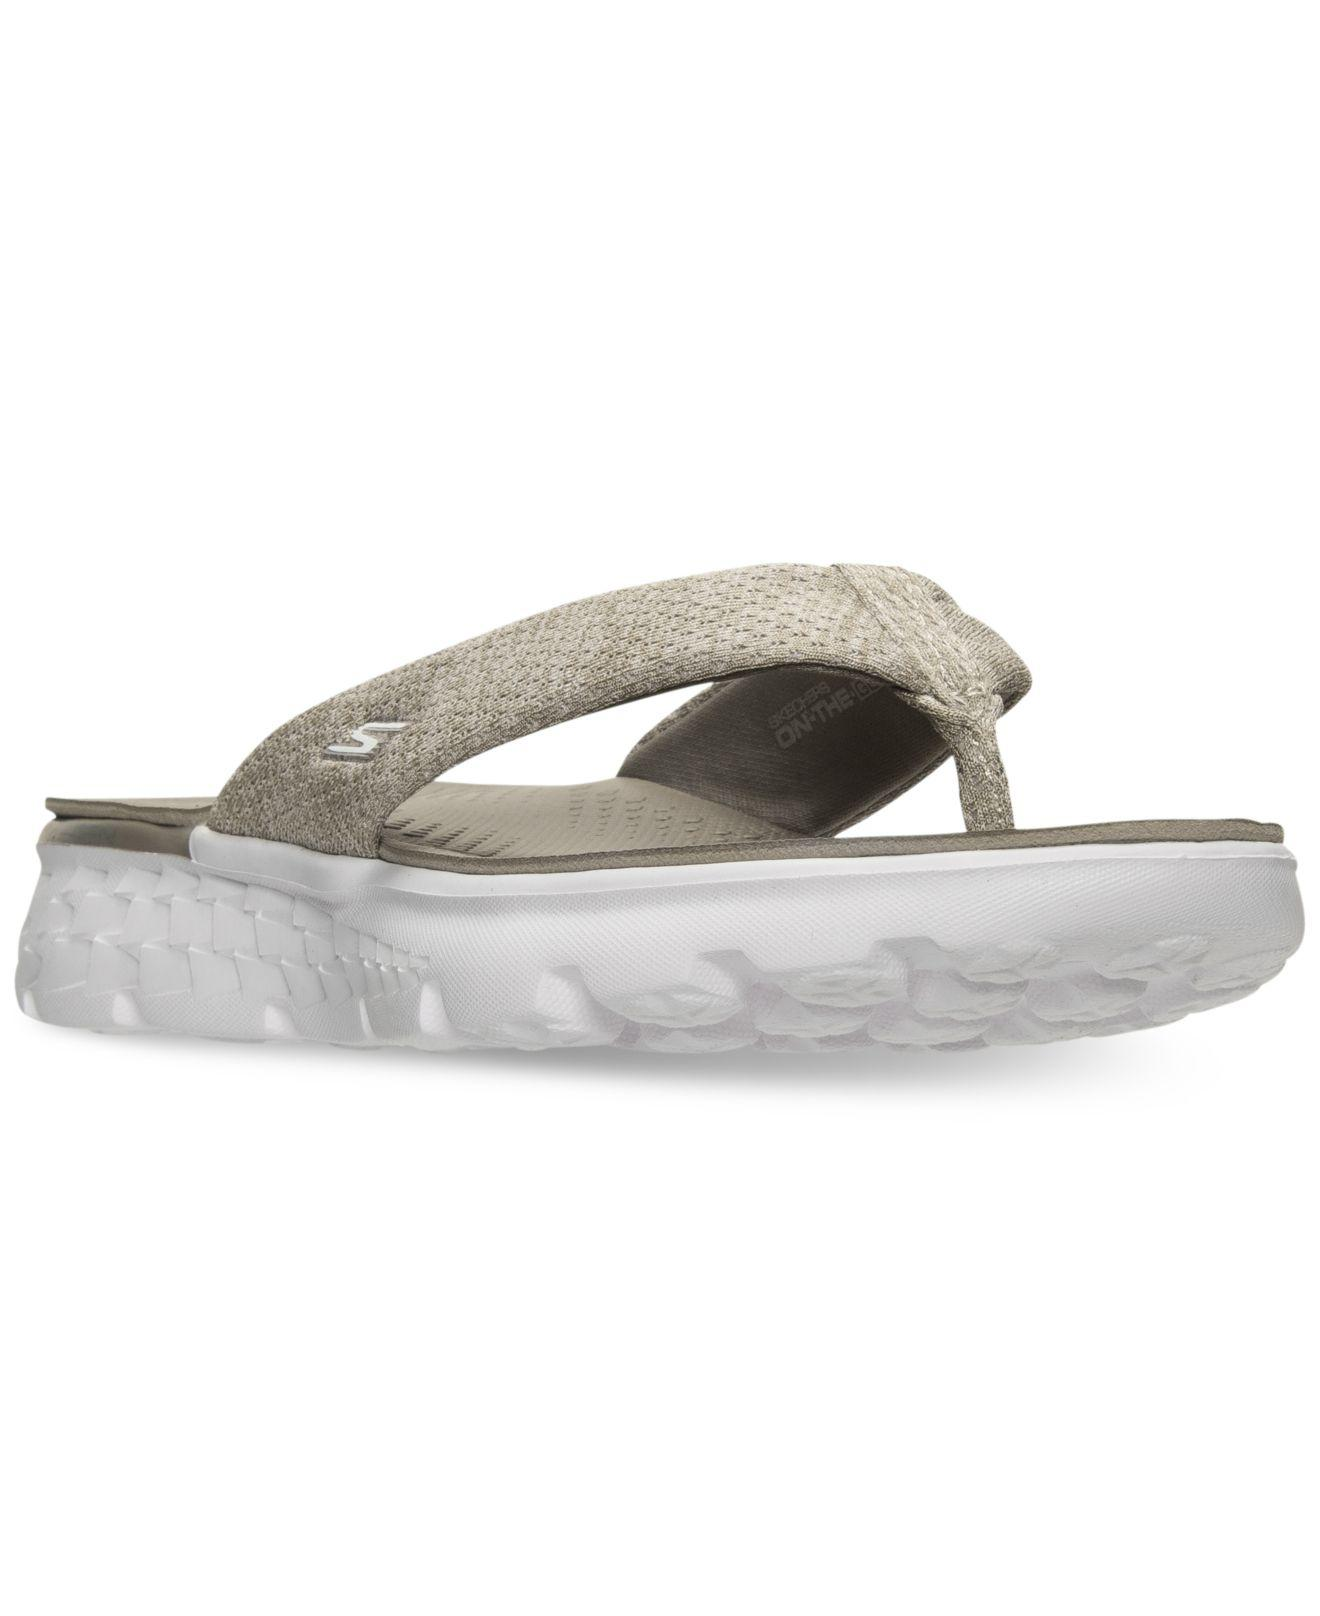 a3c65419bde Skechers. Women s On The Go - Vivacity Flip Flop Thong Sandals From Finish  Line